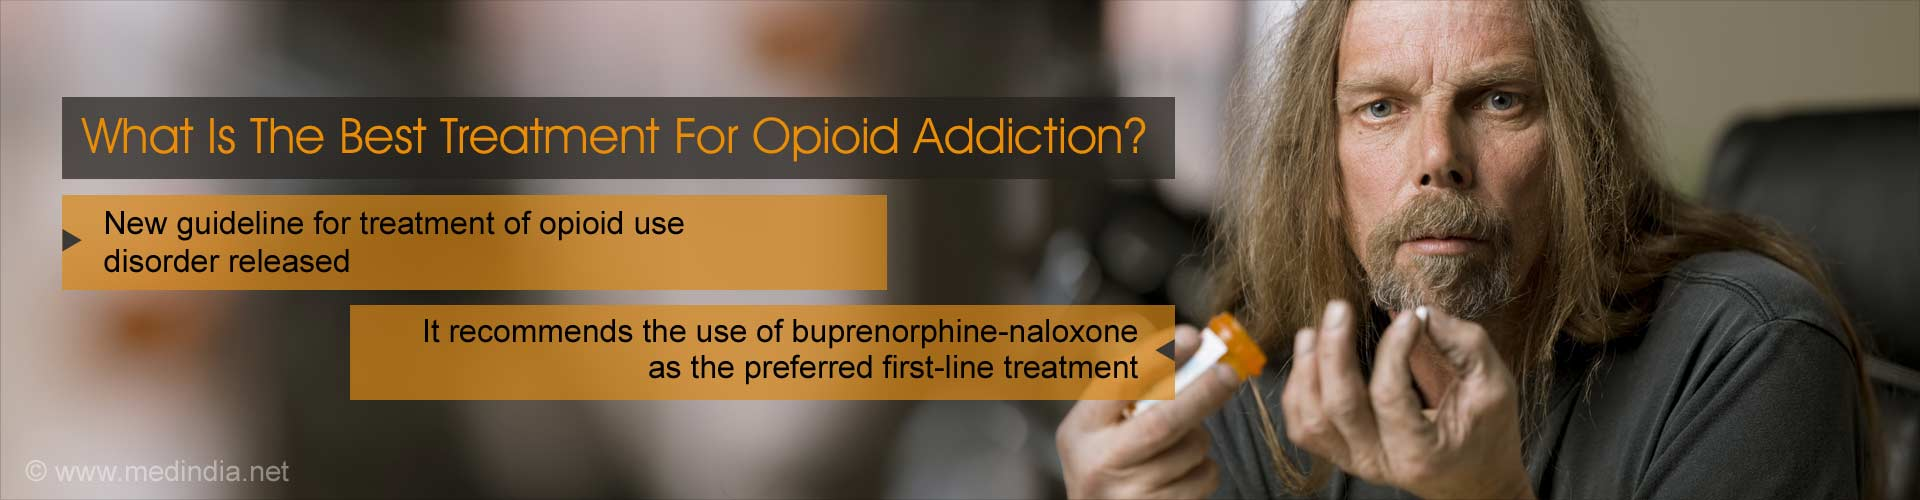 What Is The Best Treatment For Opioid Addiction?